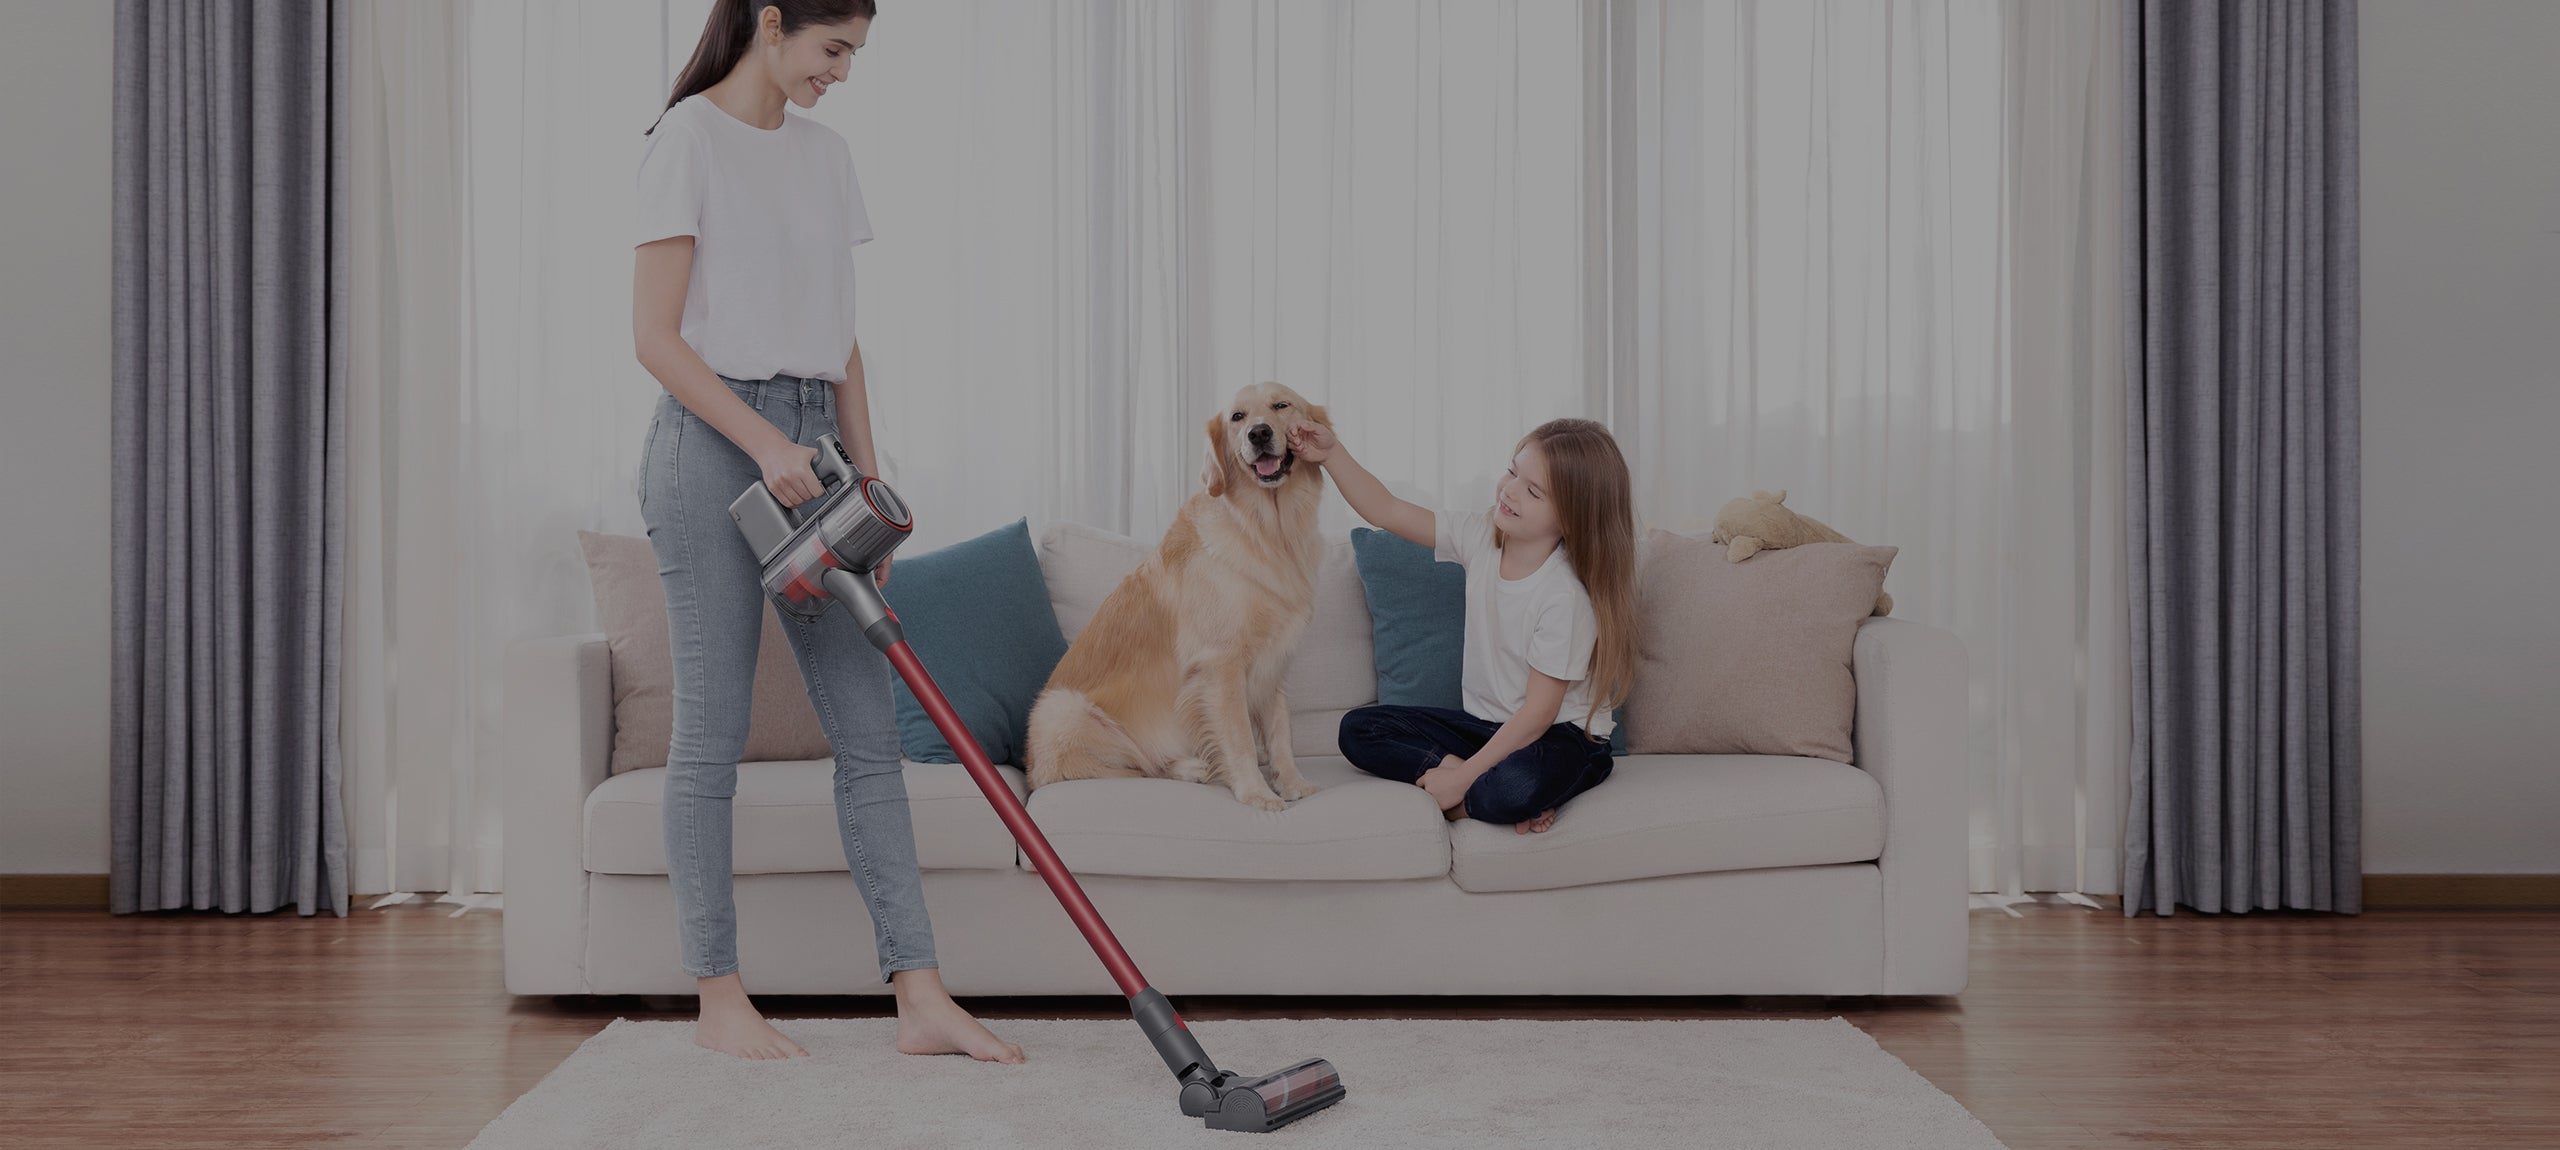 Roborock H6 helps clear away microscopic allergens everywhere in your home